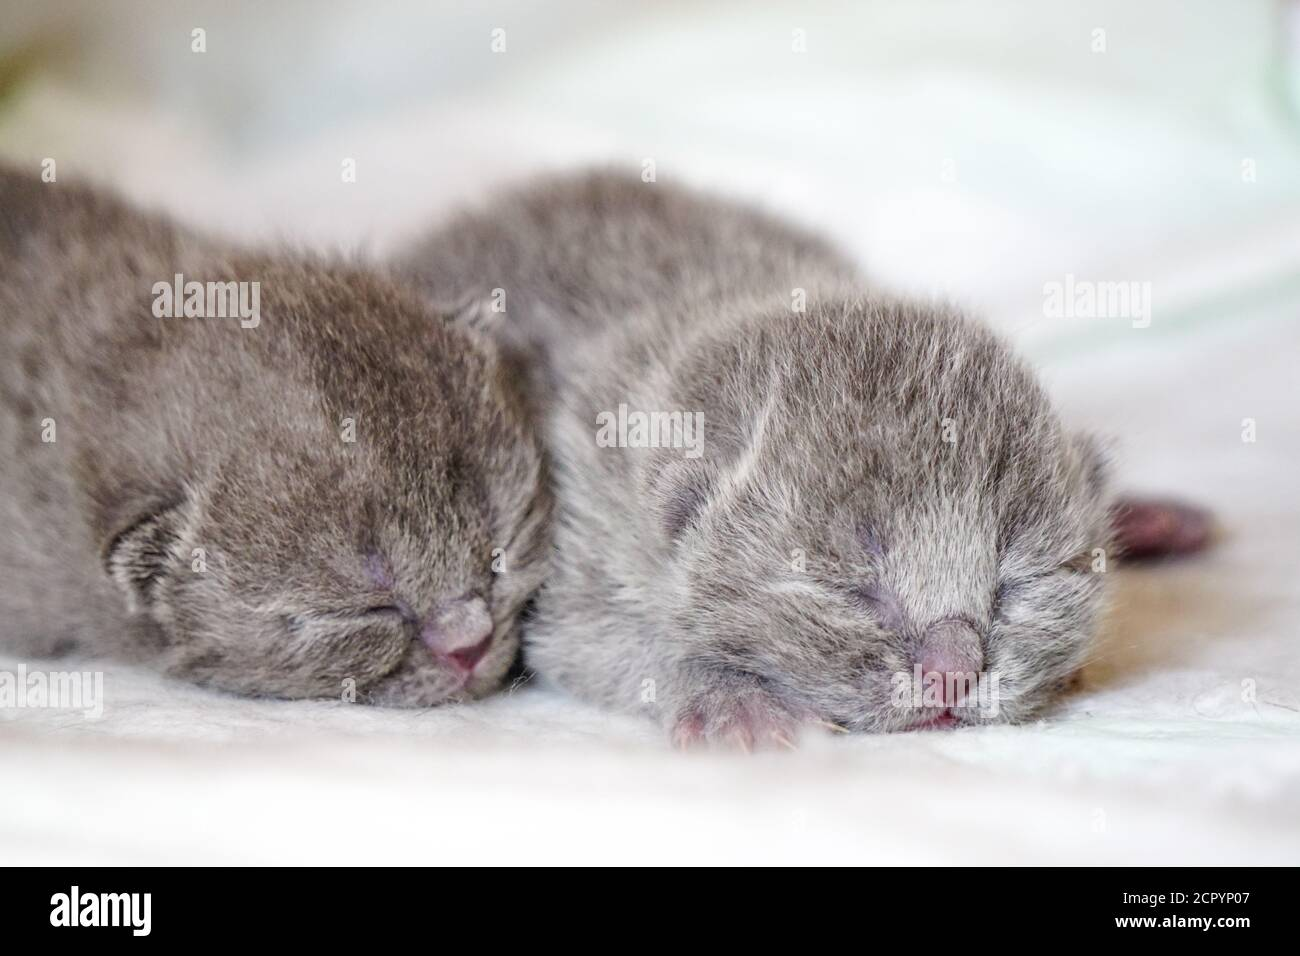 Adorable Newborn Kittens On White High Resolution Stock Photography And Images Alamy